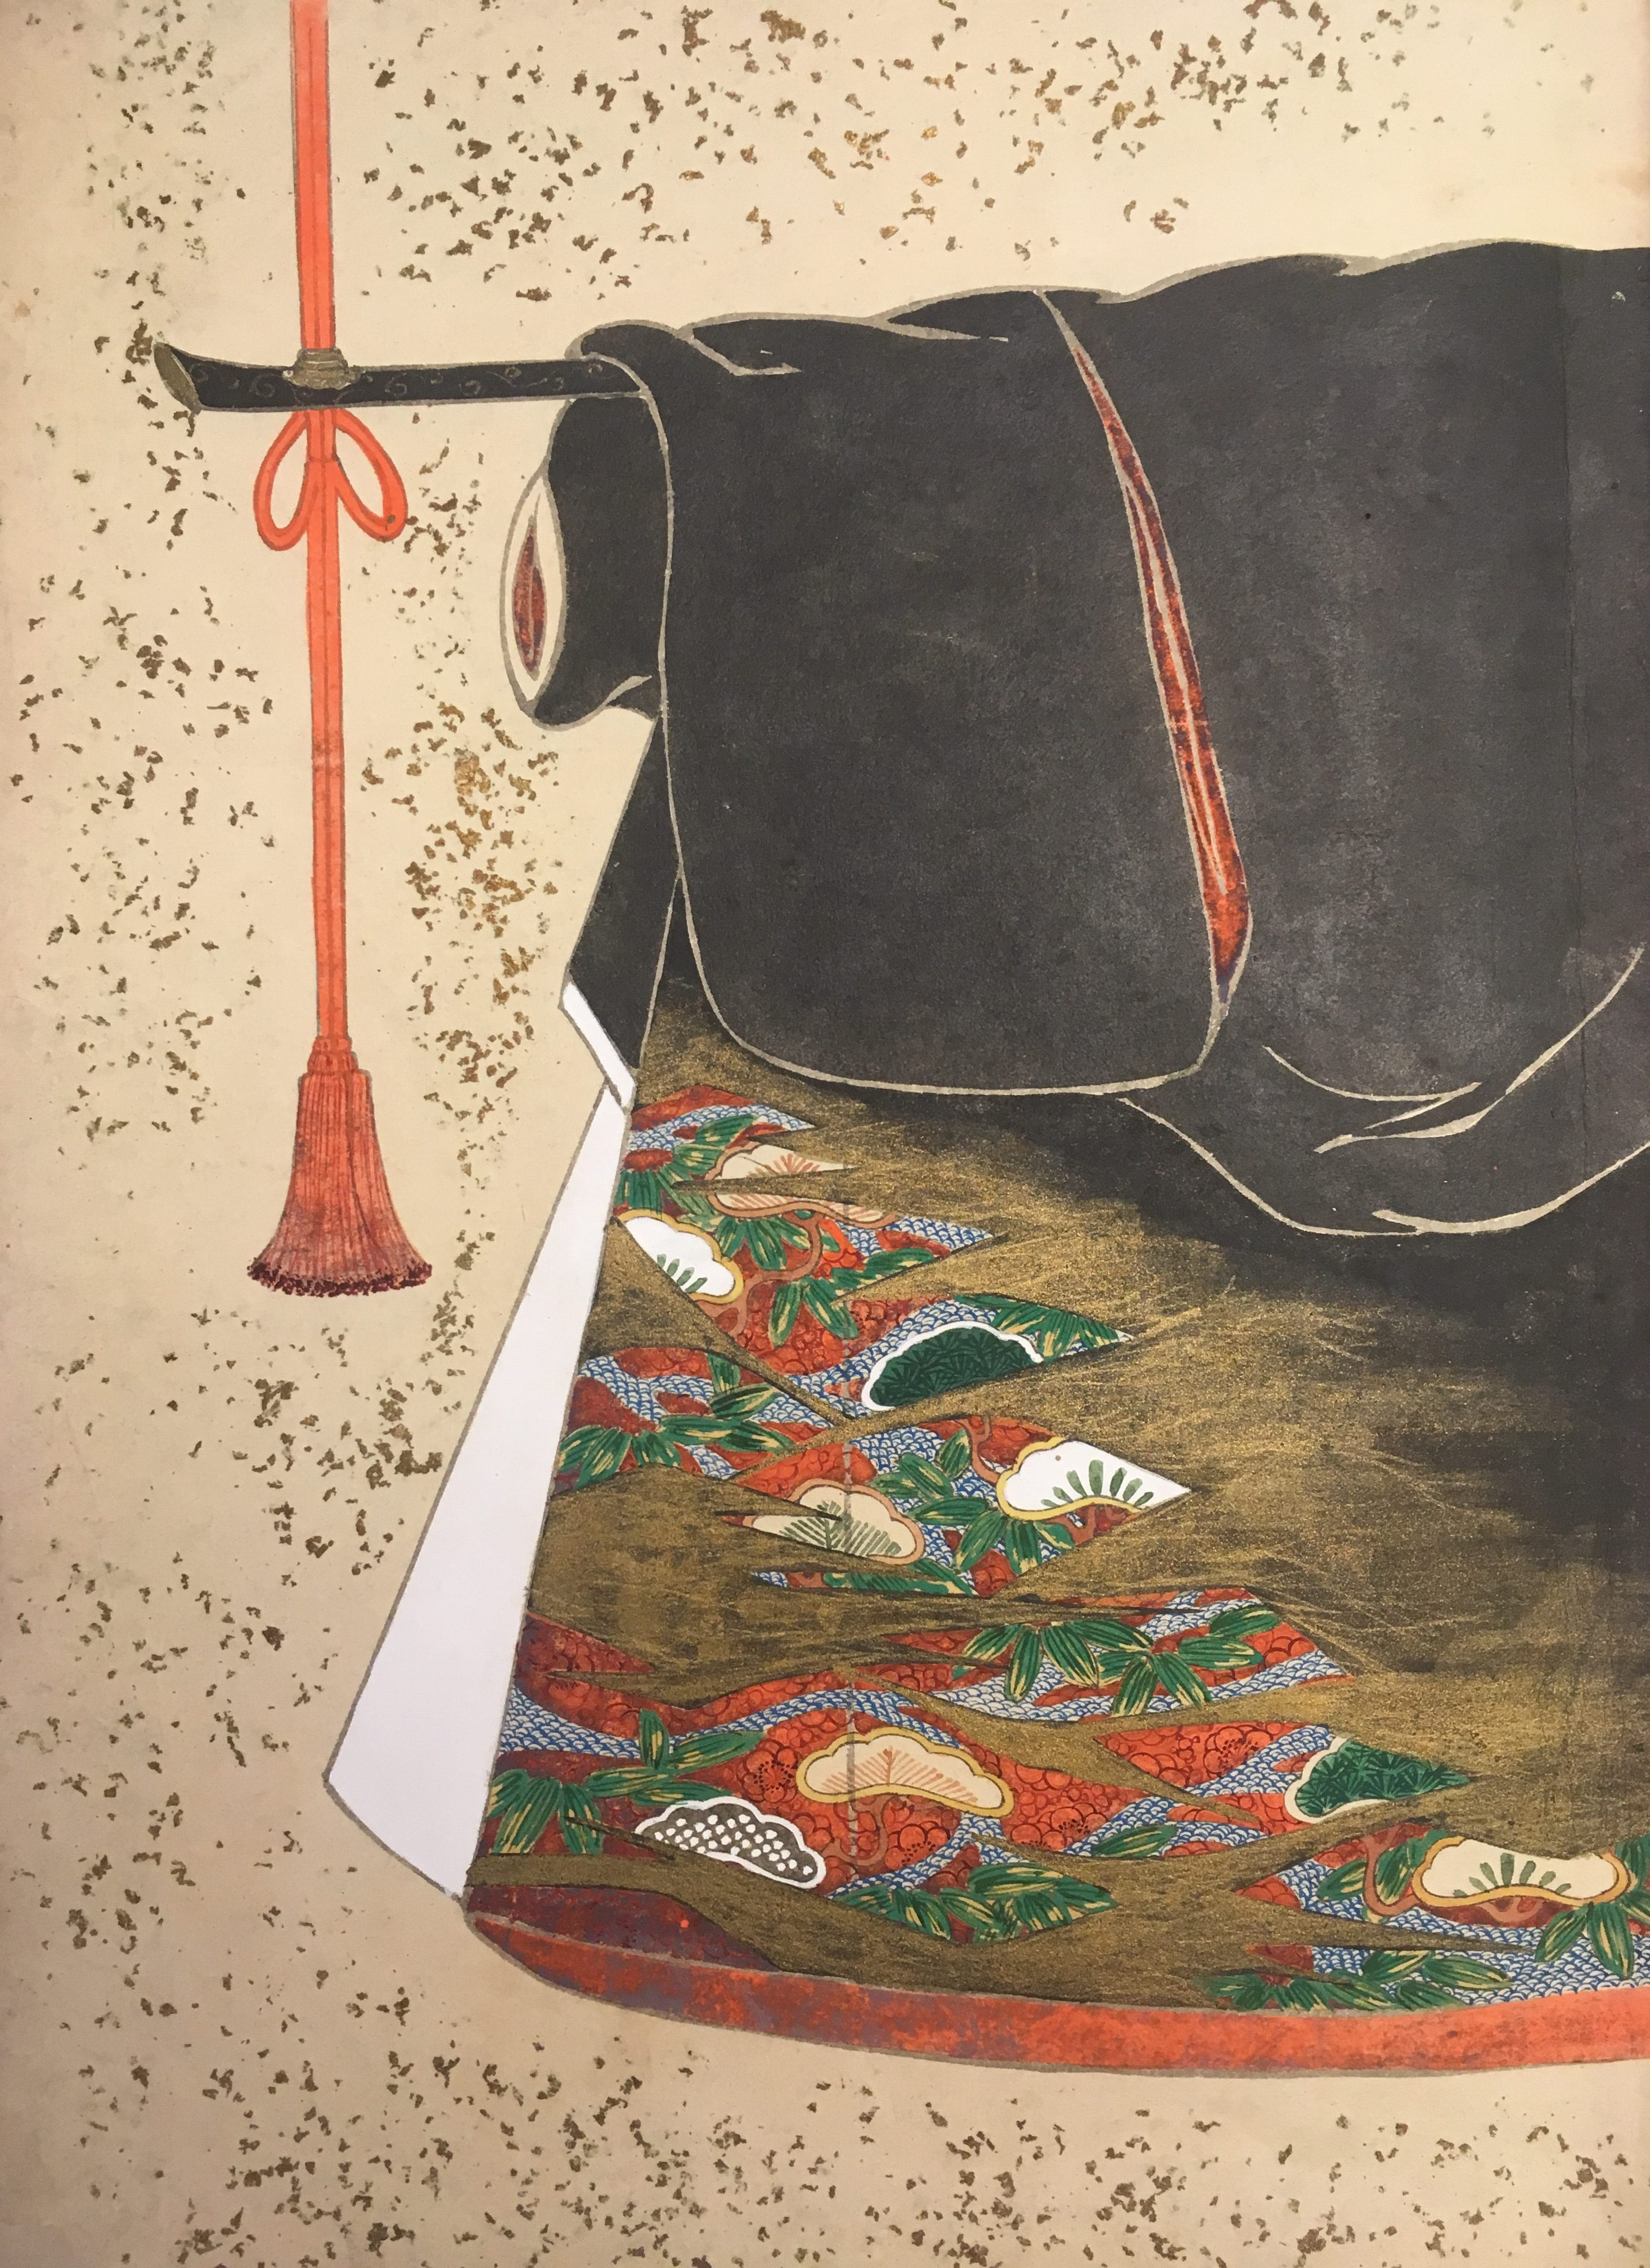 A depiction of a black kimono with a red-orange and white interior. In the lower outside corner is a staggered series of painted fans.